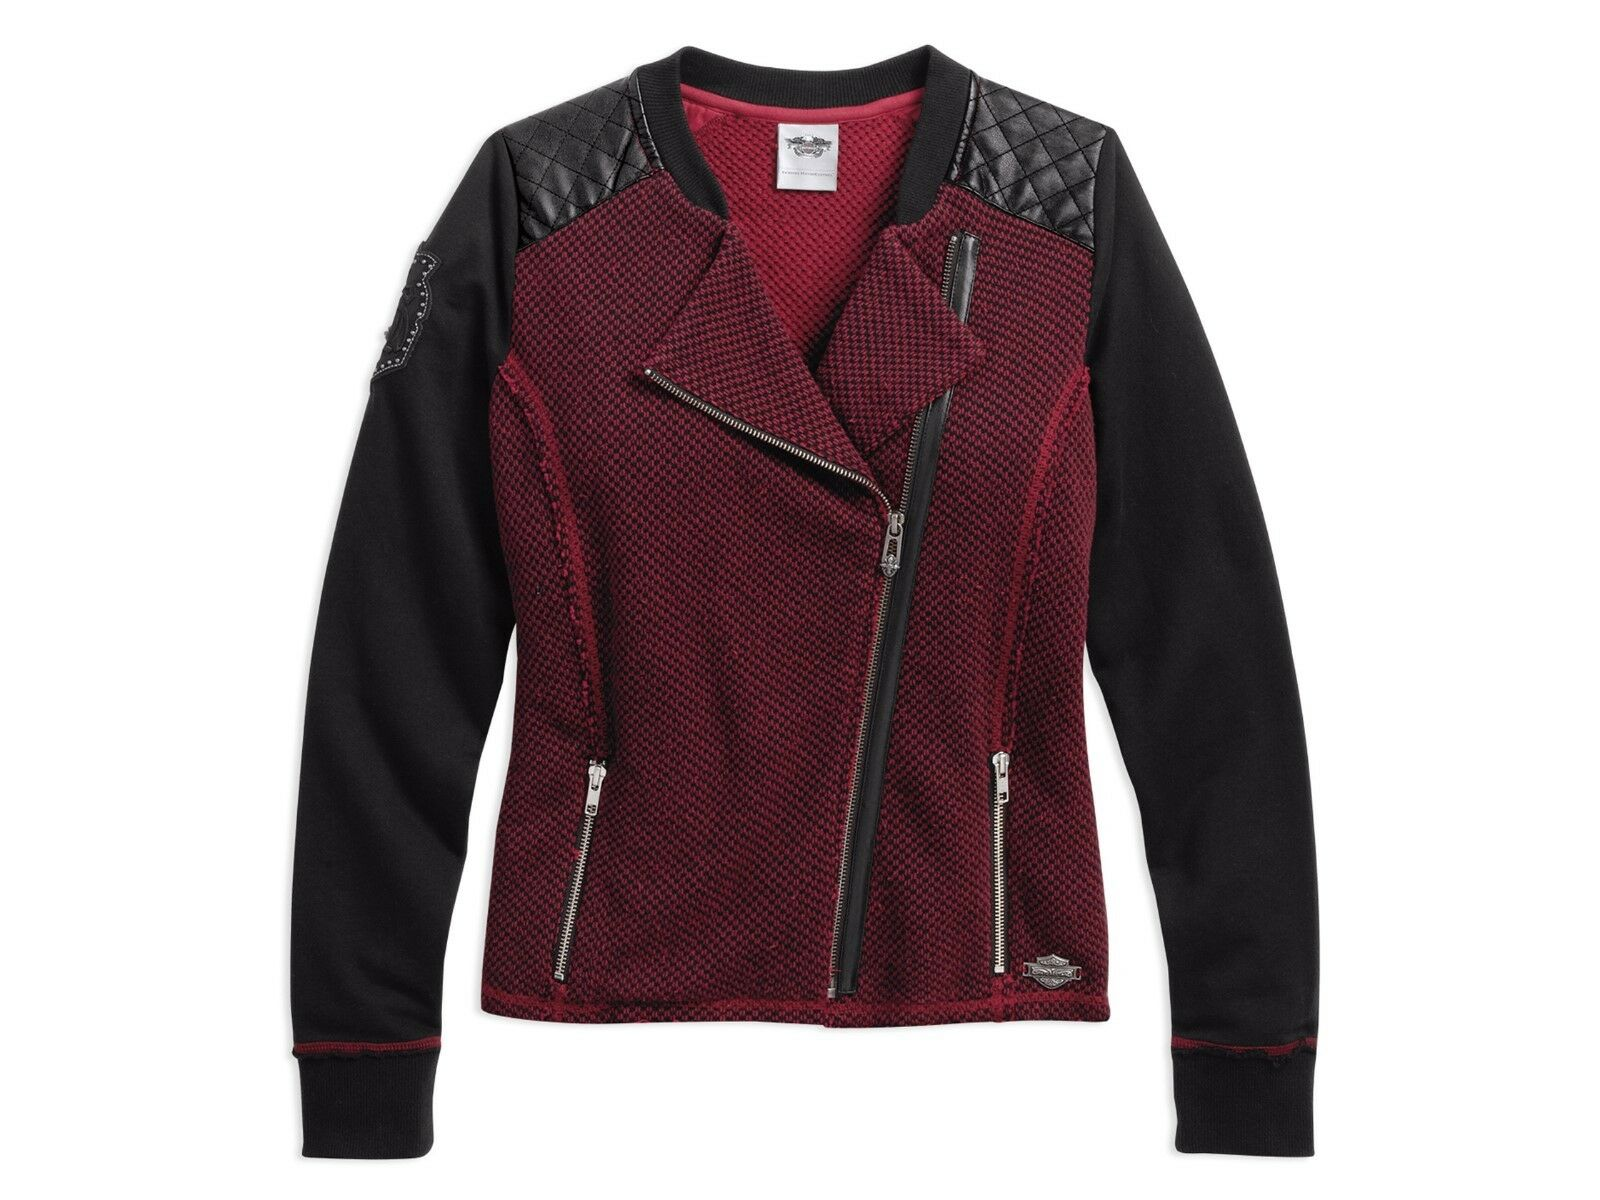 Harley-Davidson Womens M Two-Tone Style Full Zip Cardigan Red 96169-16VW